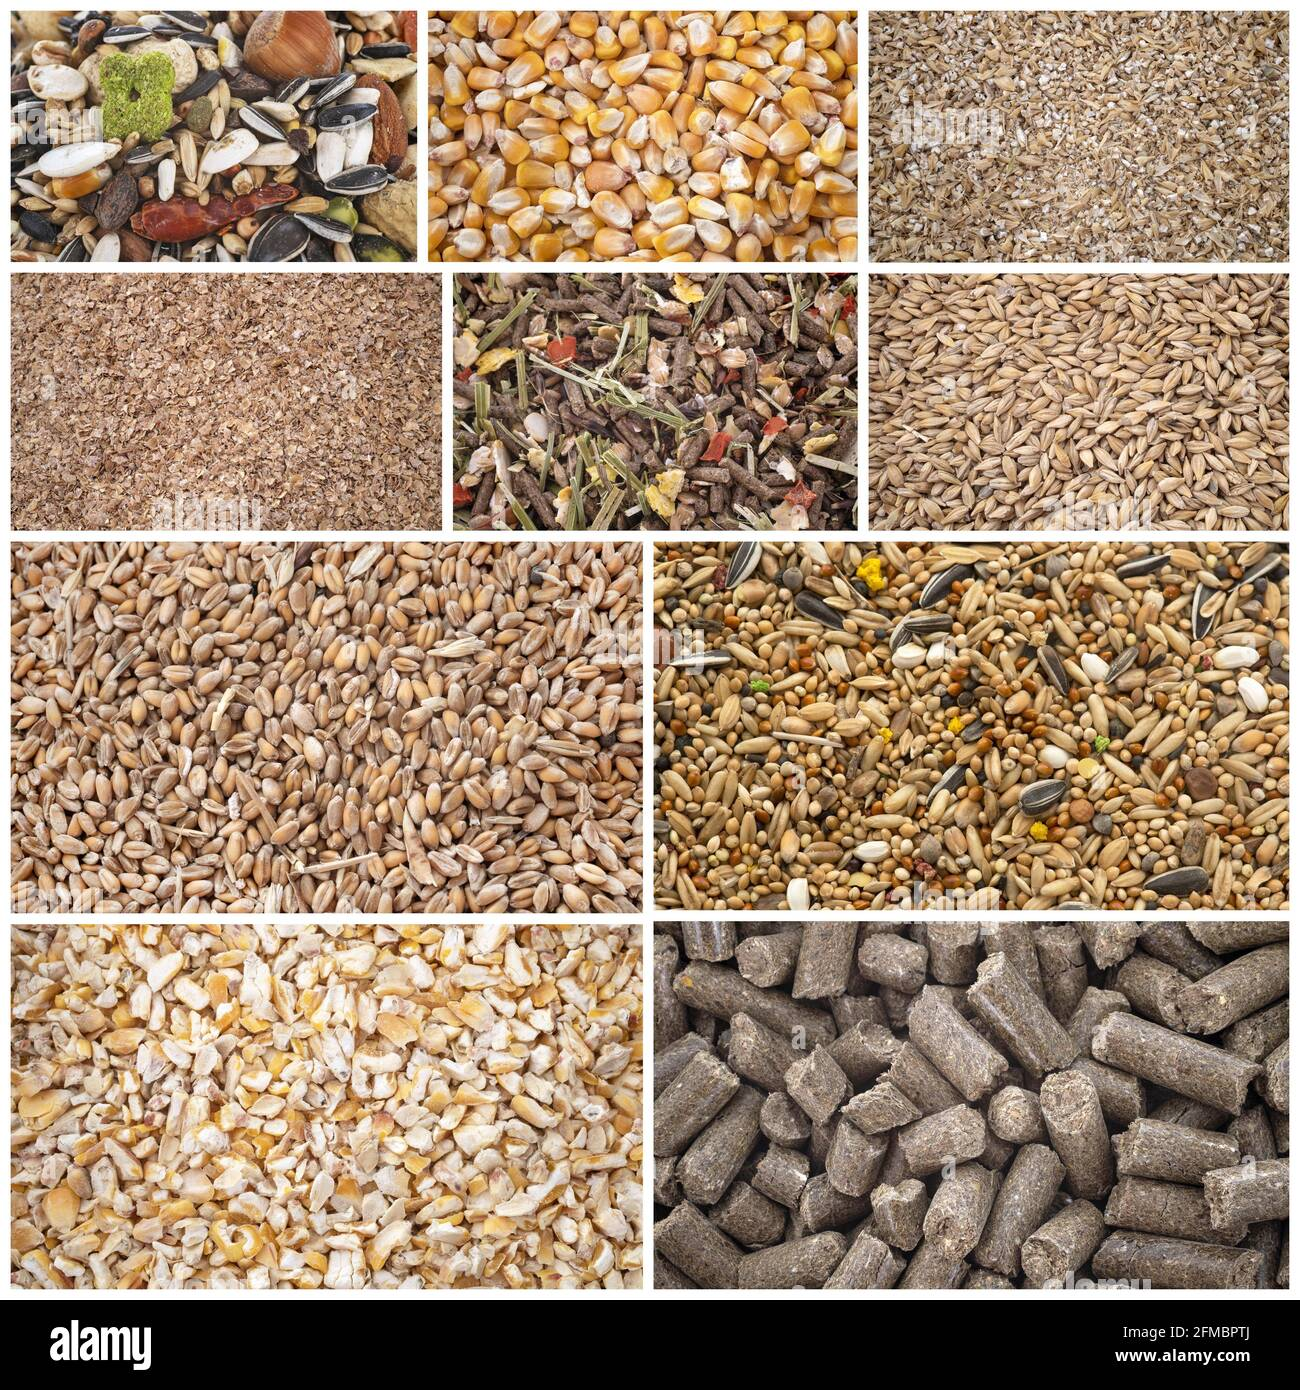 composite picture of cereals for animal food Stock Photo